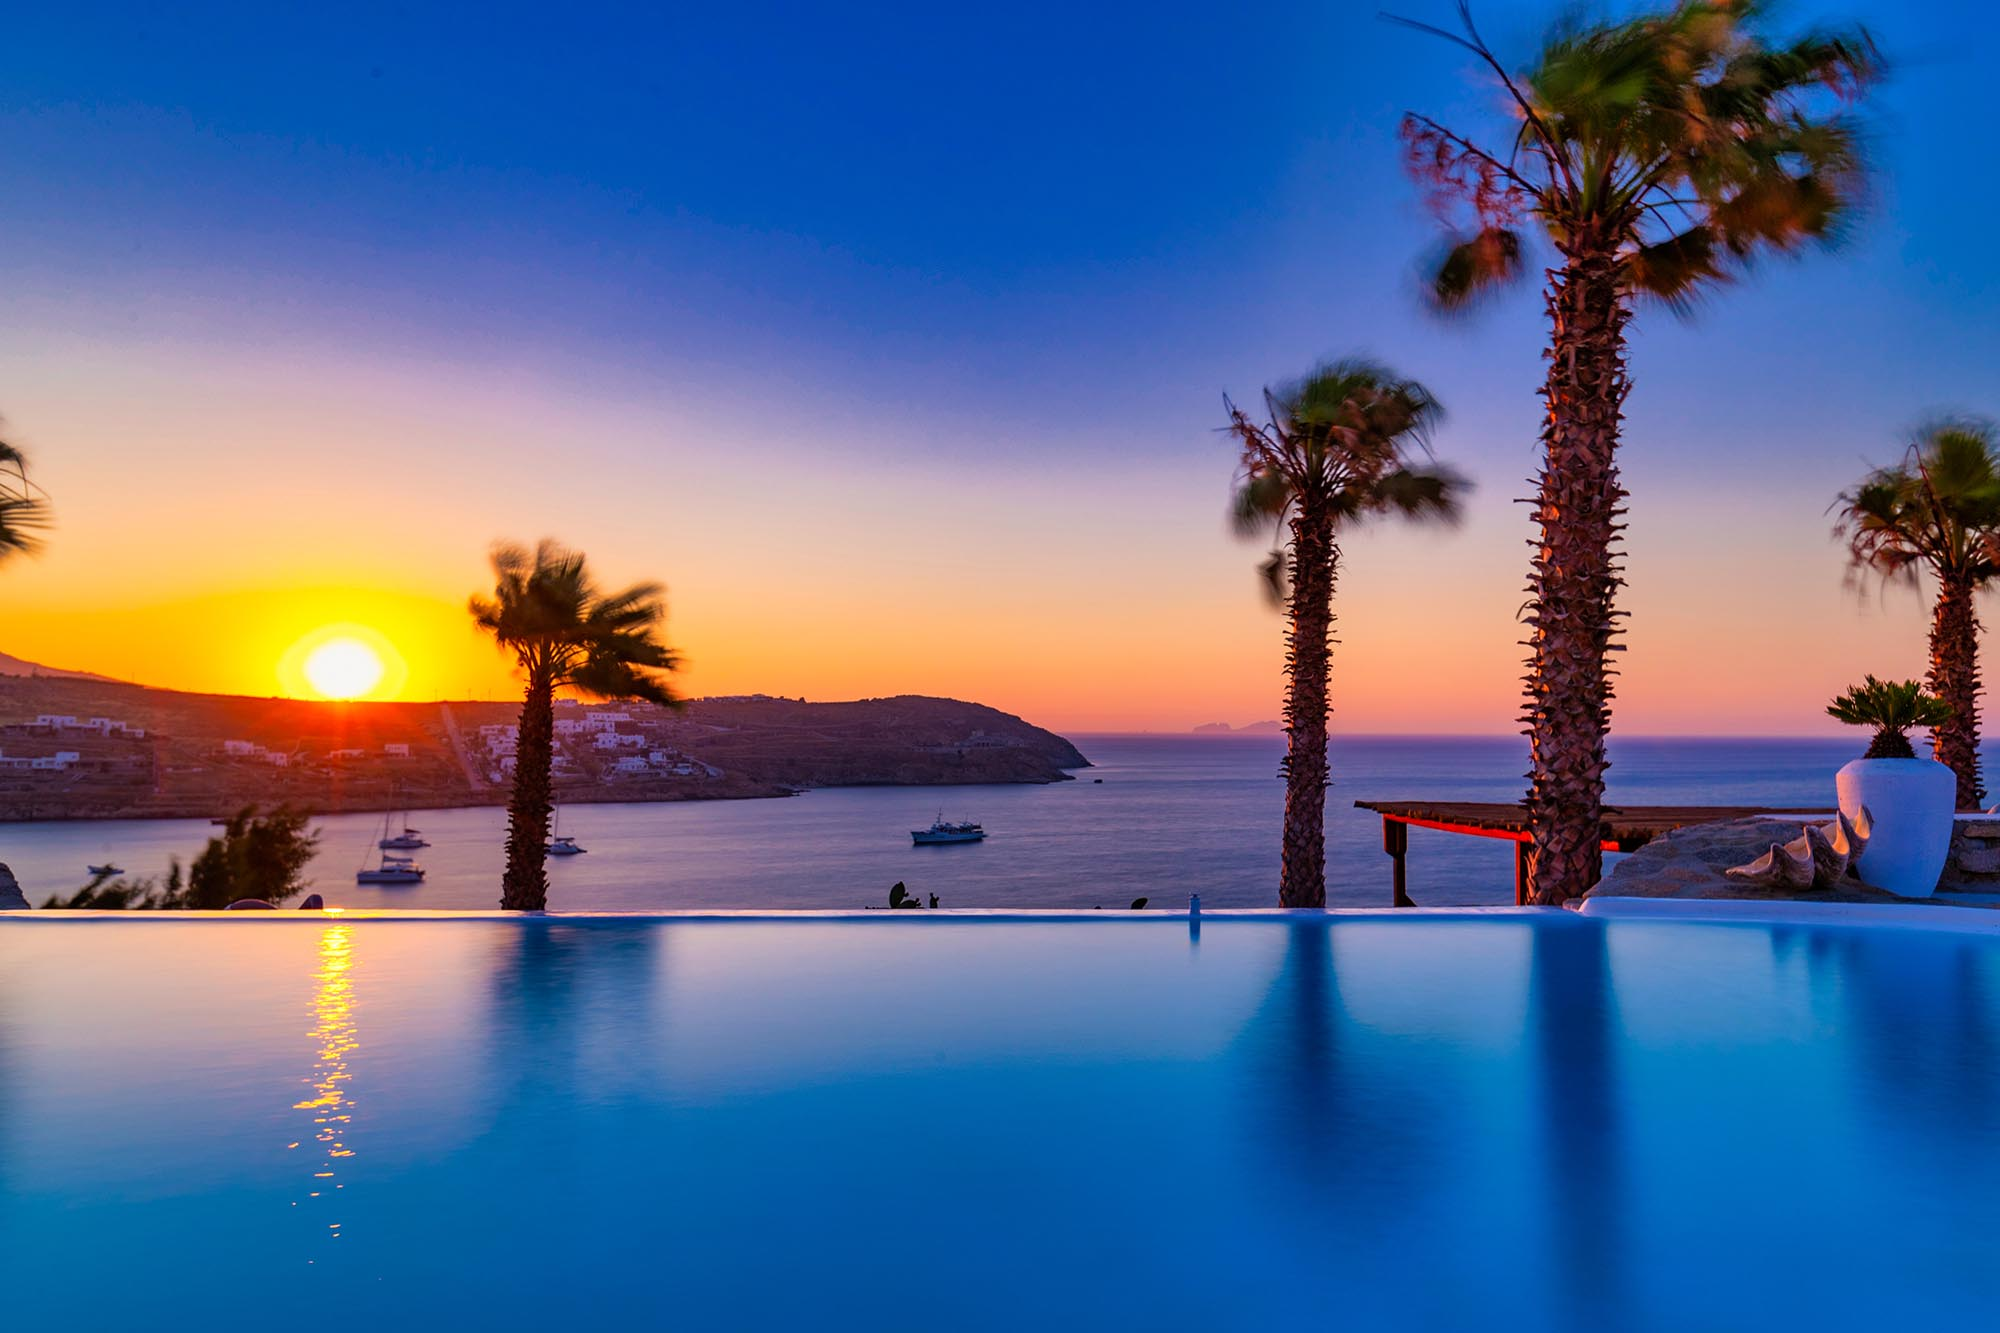 RENT A LUXURIOUS VILLA BY THE SEA IN MYKONOS - VILLA KARKOS - sunset swimming pool